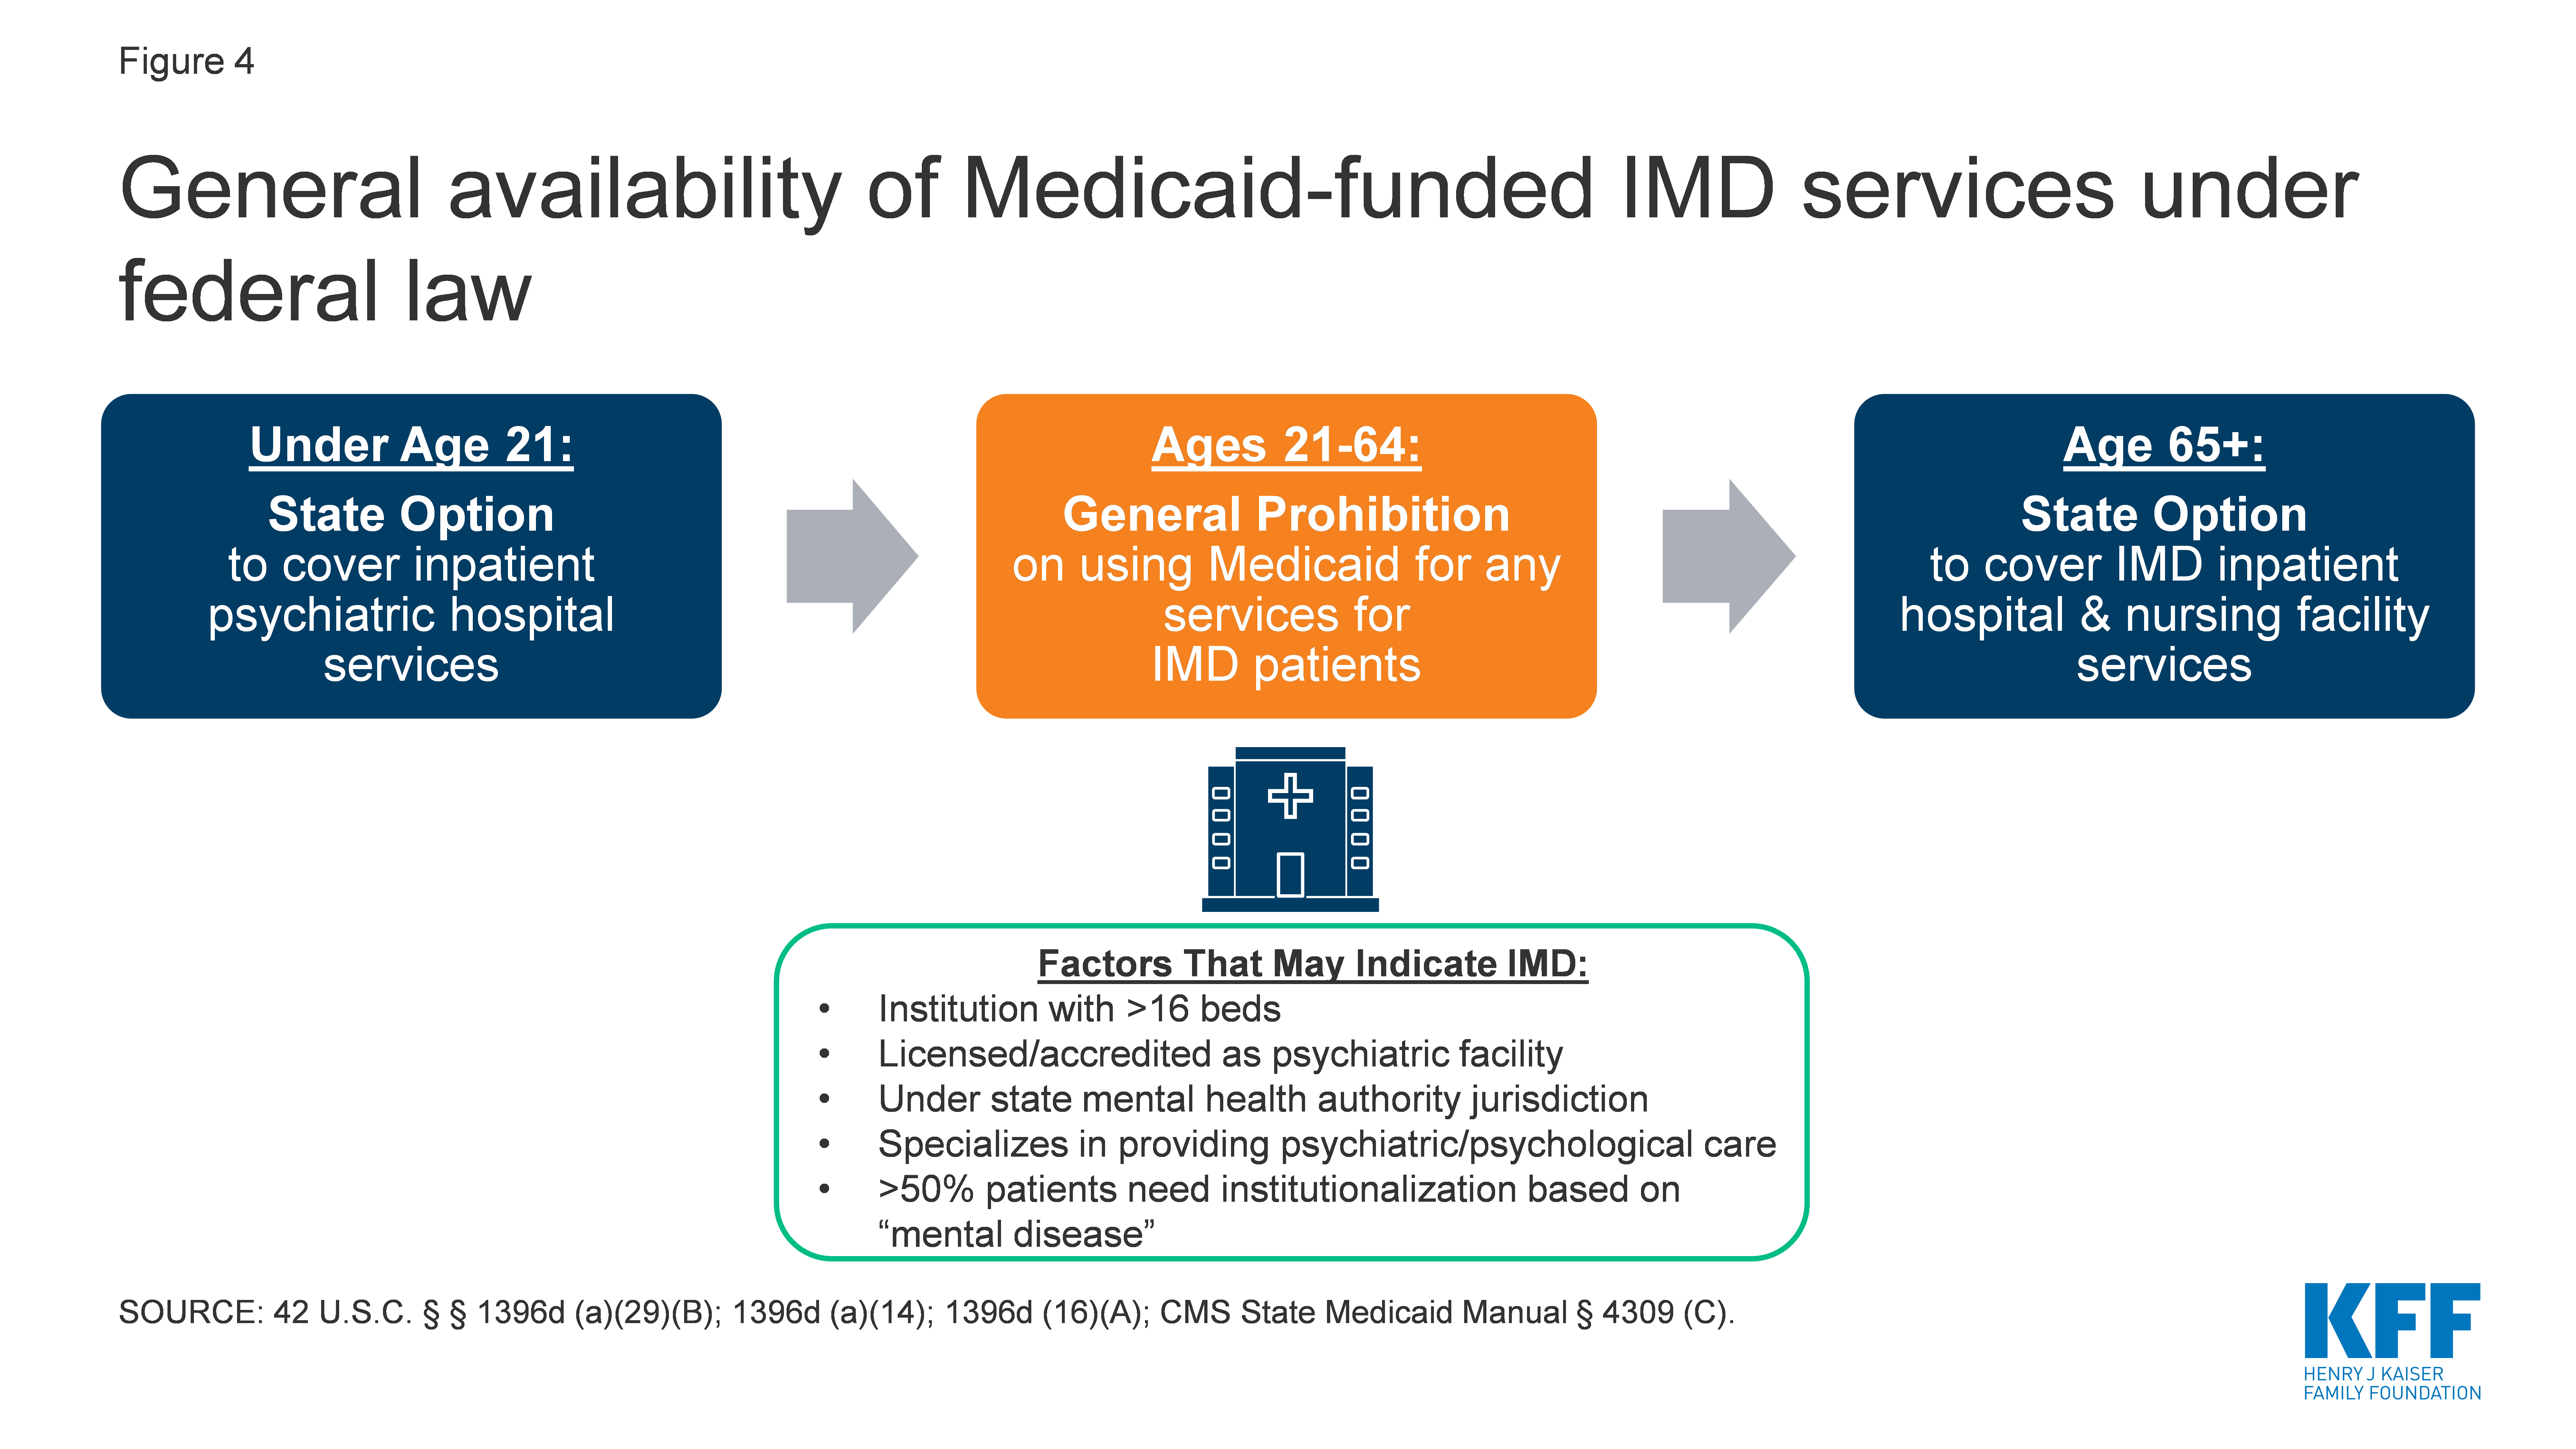 General availability of Medicaid-funded IMD services under federal law